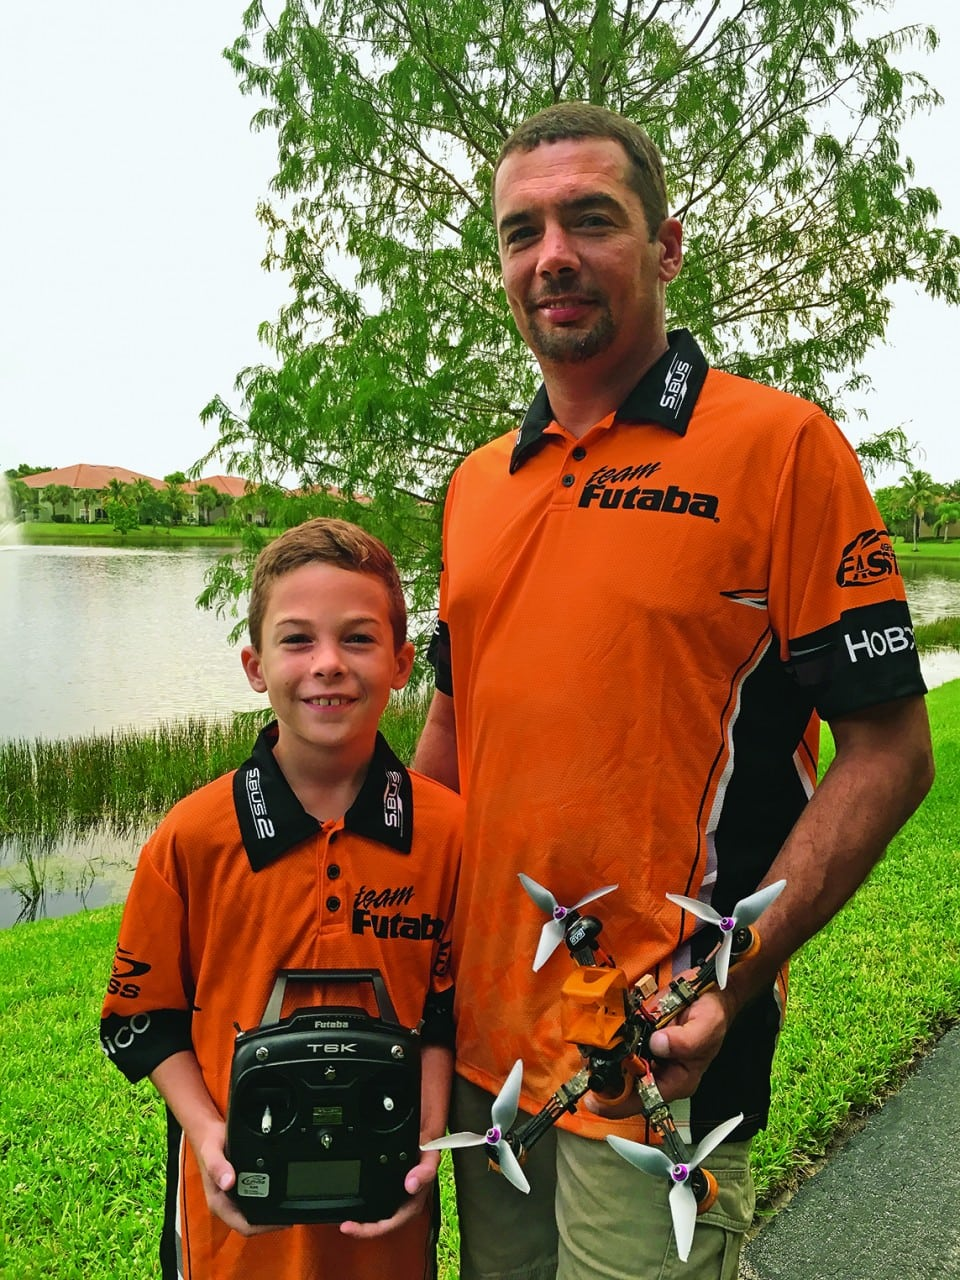 A Father/Son FPV Team are the Latest to Join Team Futaba